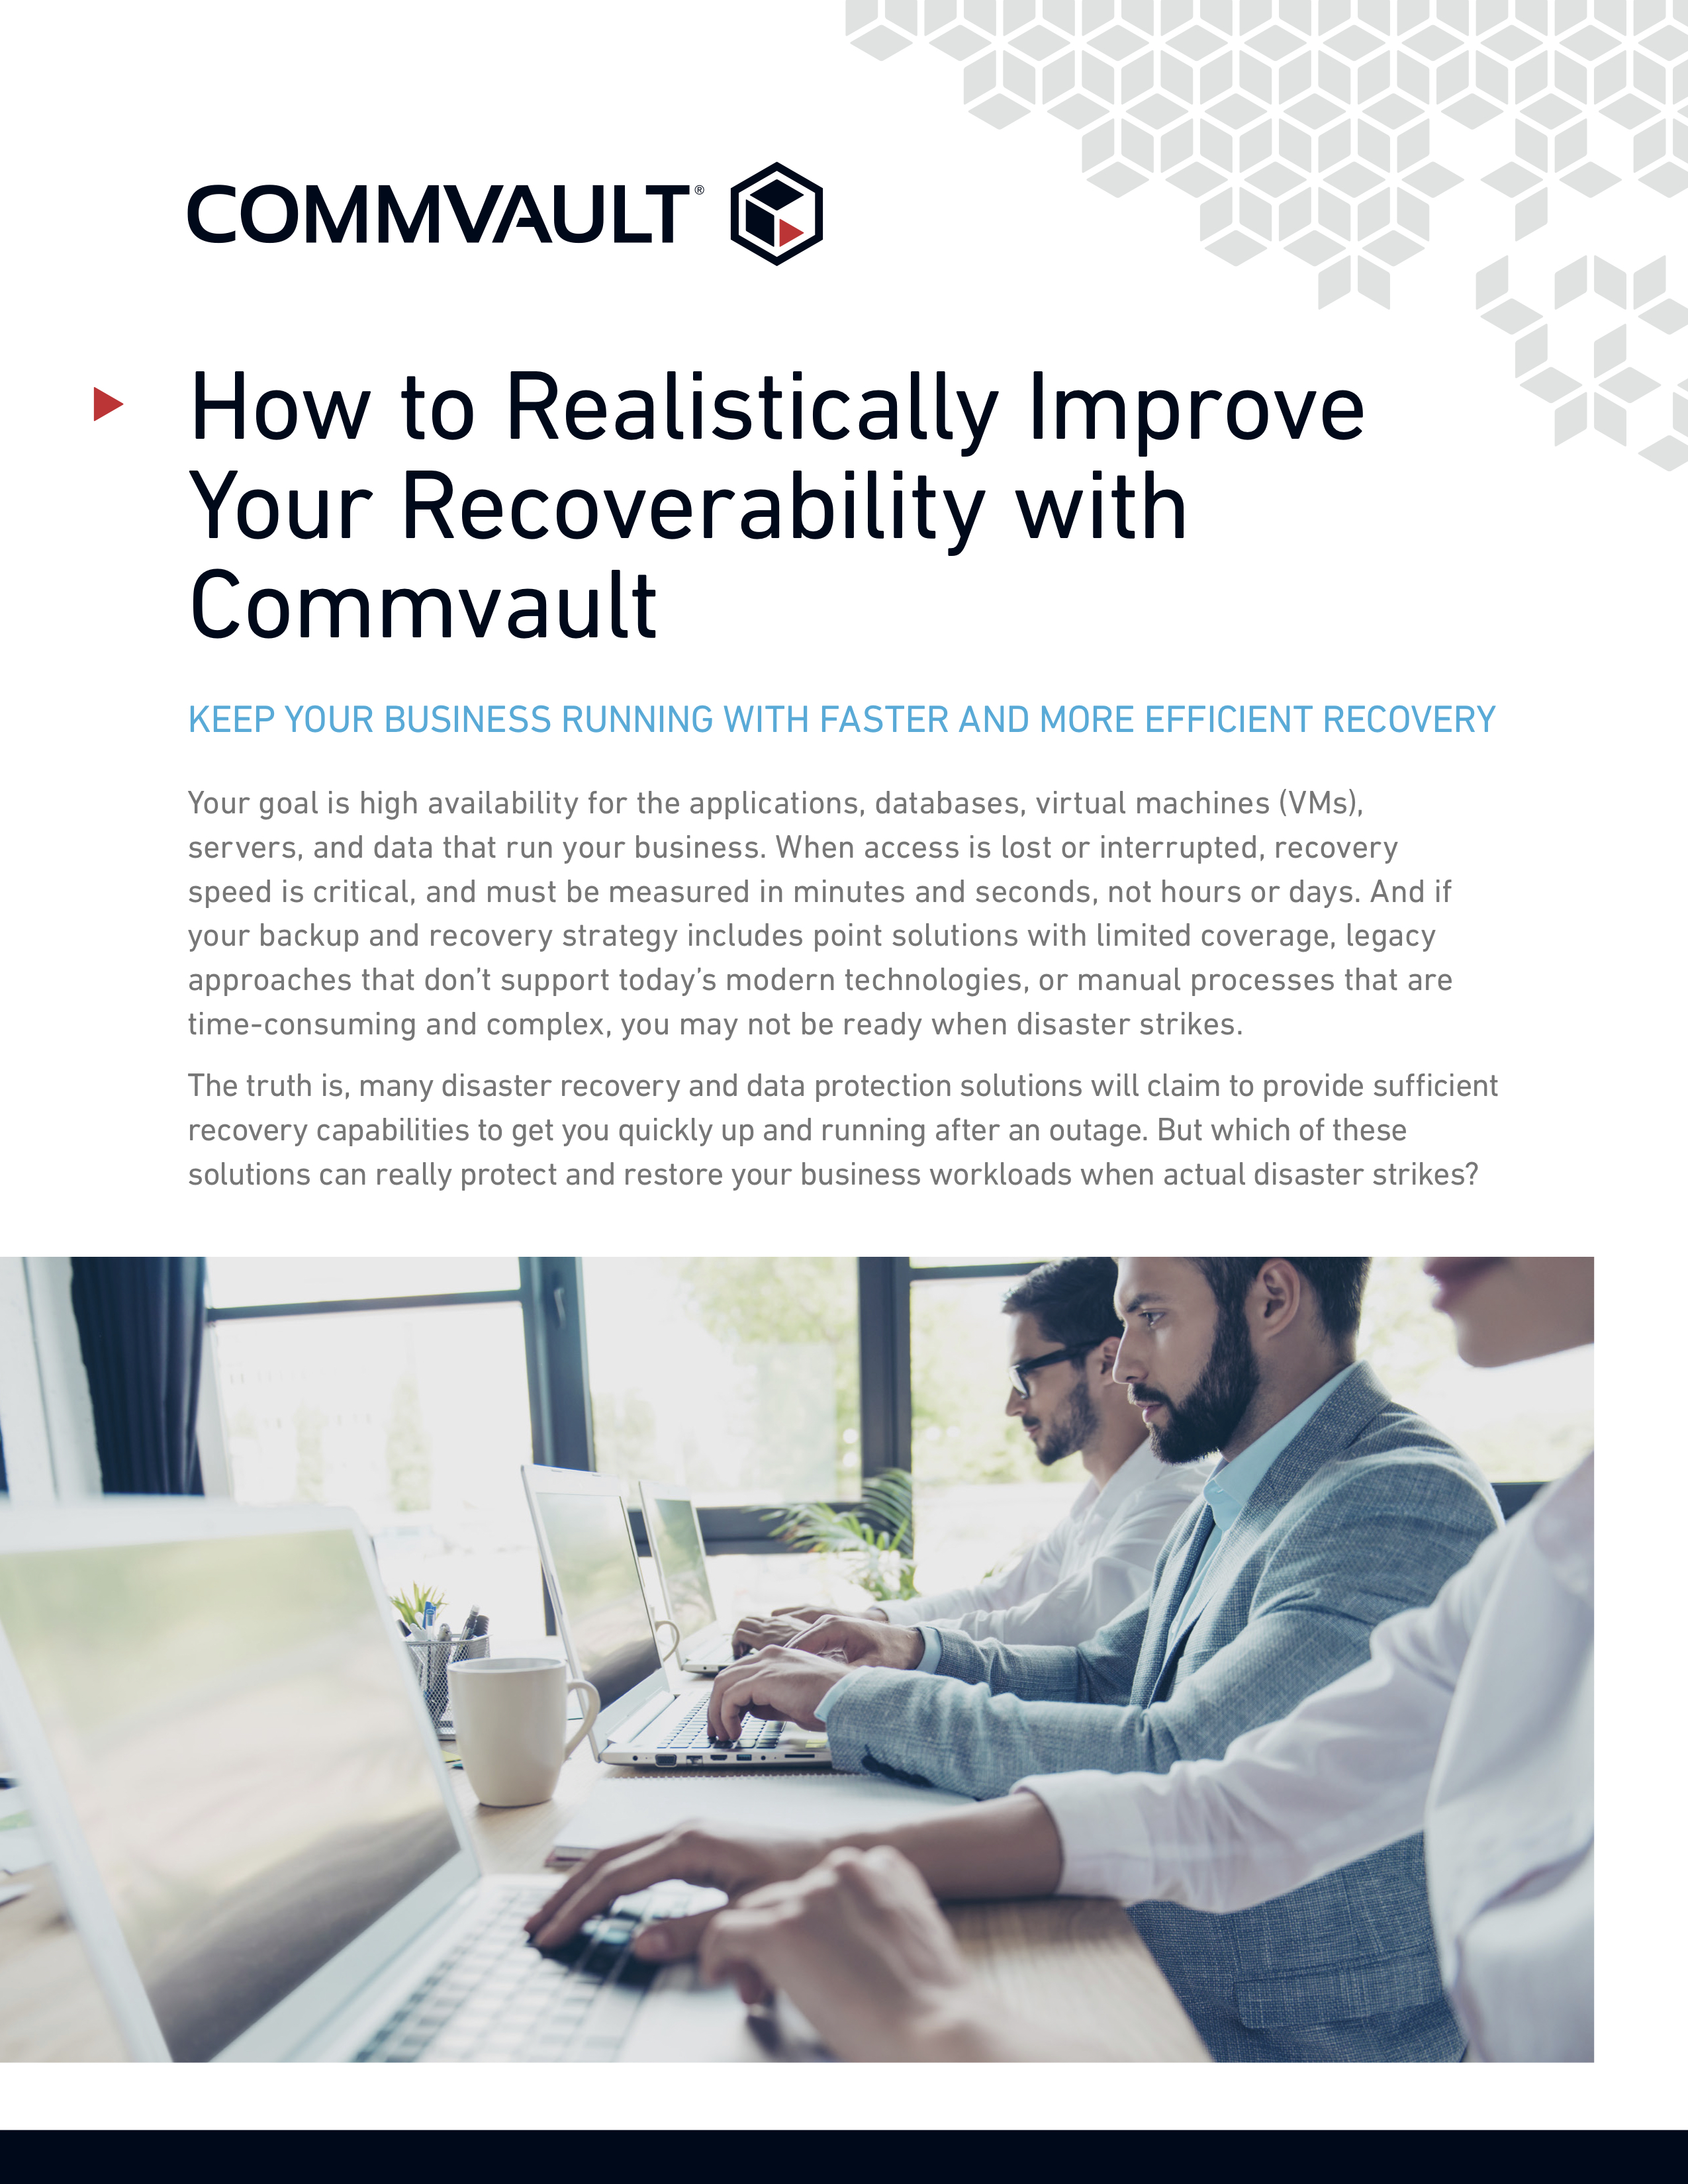 How to realistically improve your recoverability with commvault